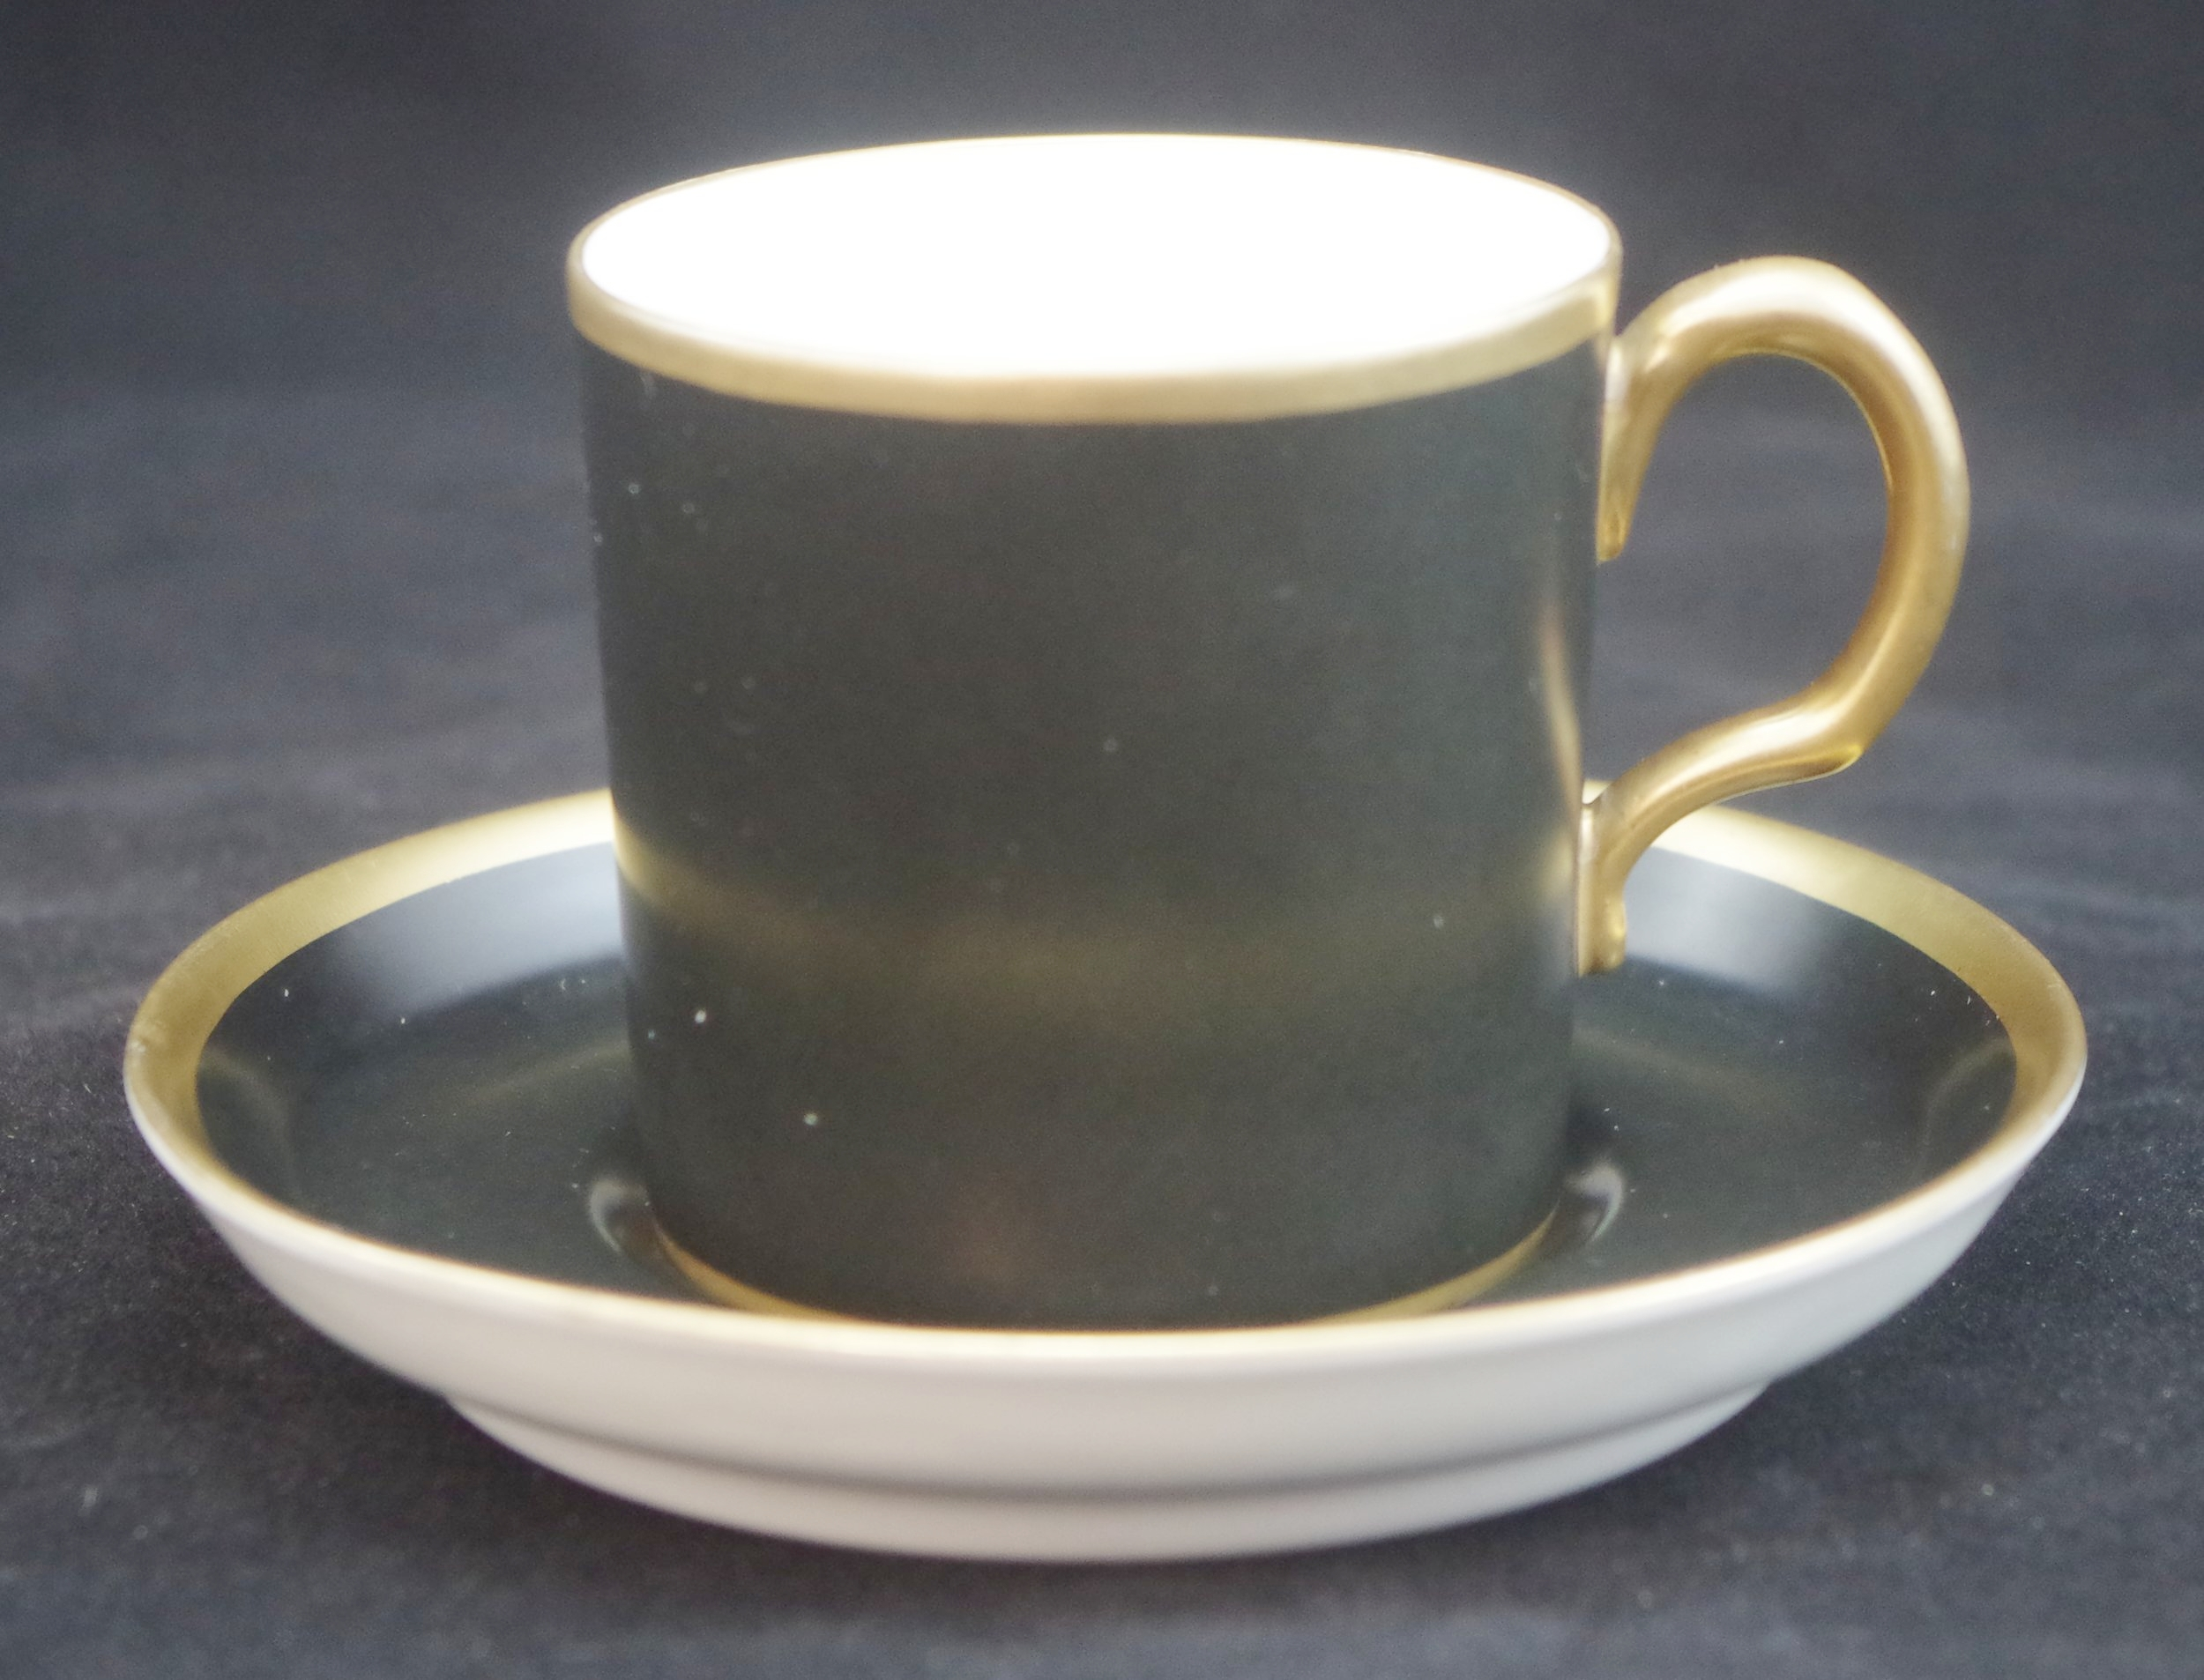 royal-crown-derby-edinburgh-shape-black-ground-coffee-cup-and-saucer.JPG